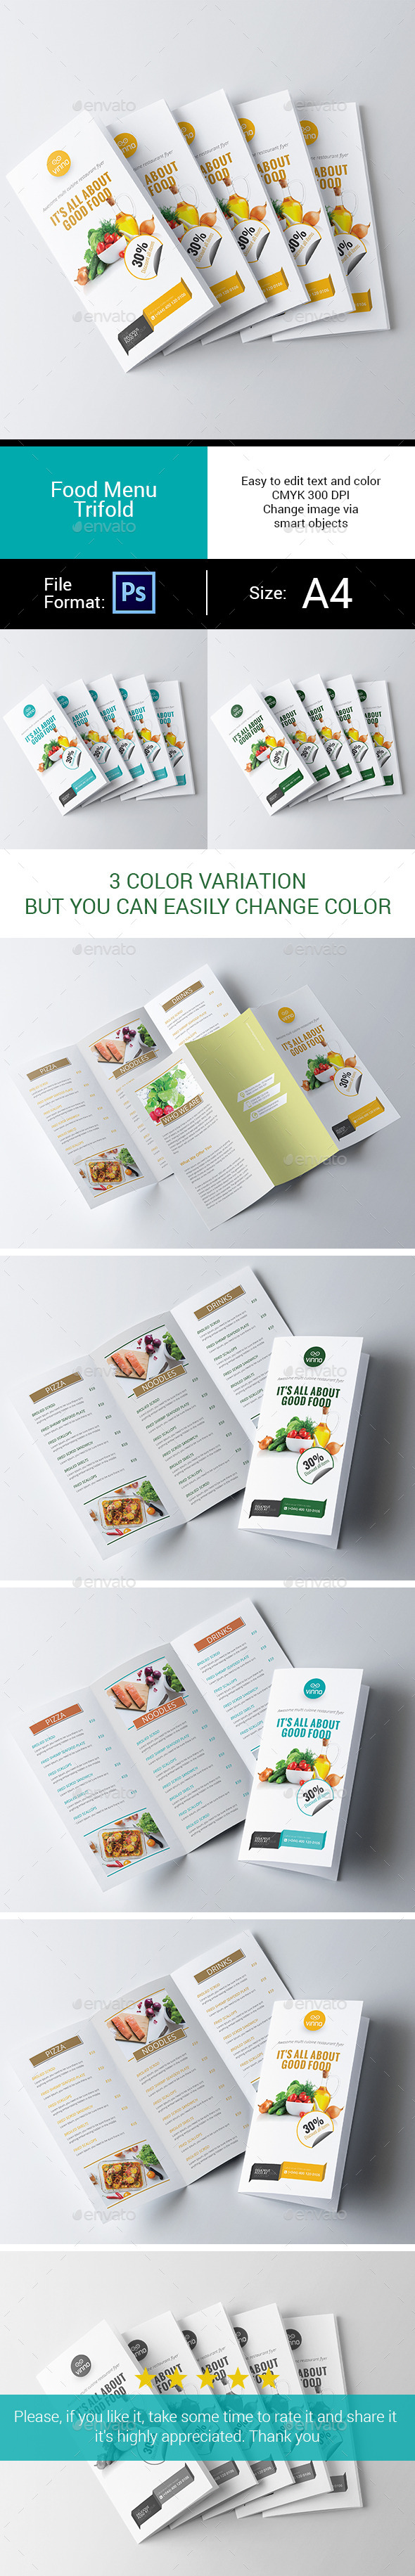 GraphicRiver Food Menu Trifold 11544937